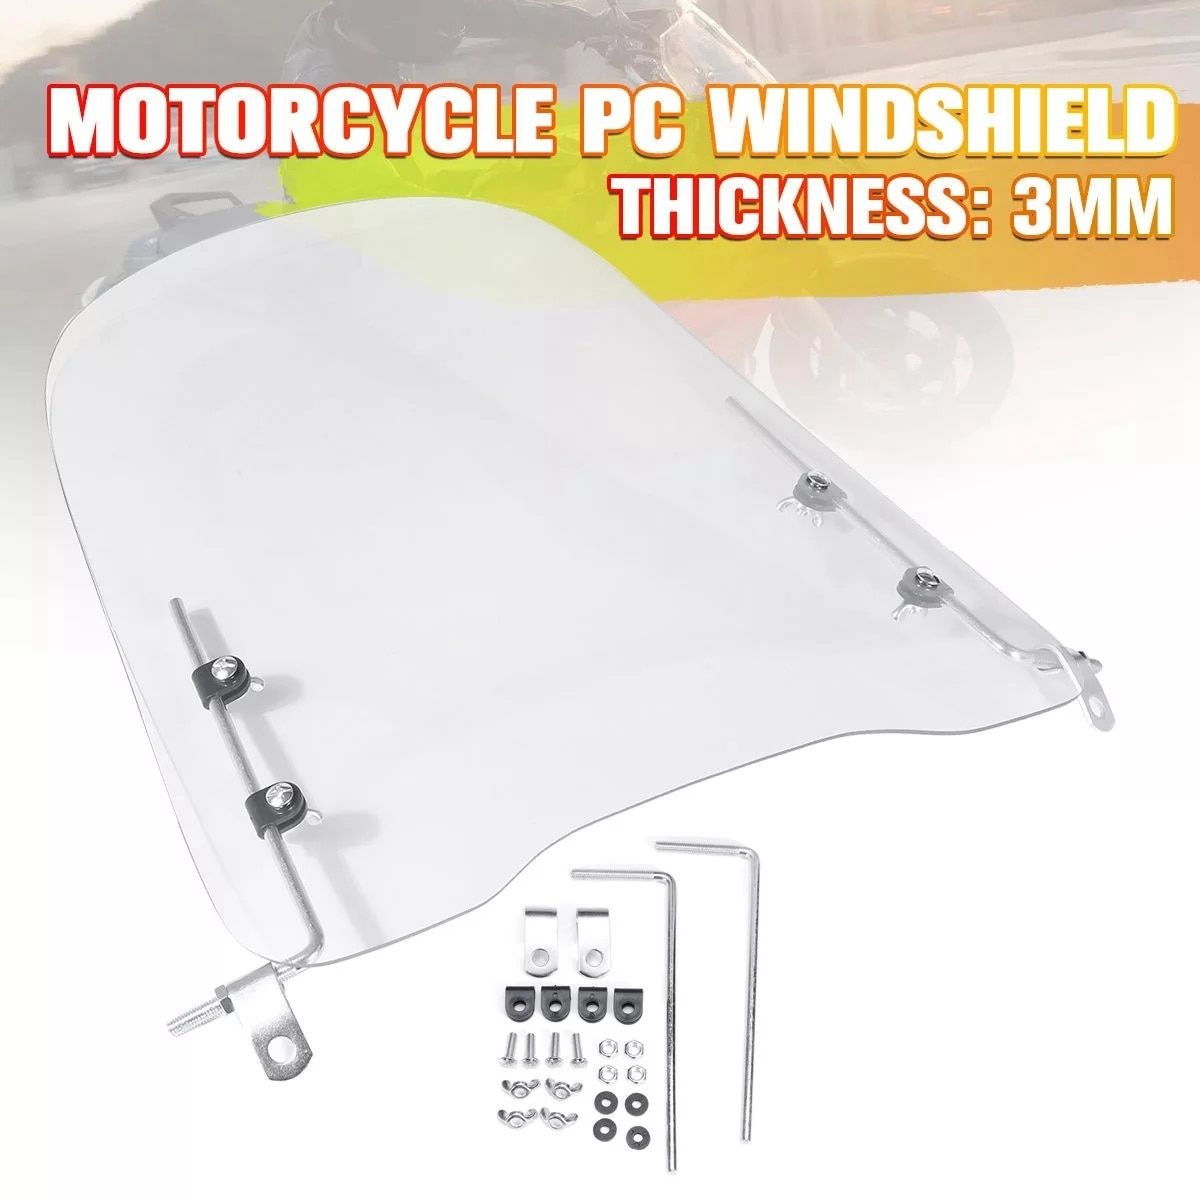 motorcycle wind screen deflector for suzuki boulevard m109 m109r m90 m50 m109r2 m109rz limited 2006 2016 pc windshield w clamps 3mm Thick Motorcycle Wind Cold Deflector Clear Transparent PC Plate Scooter Windshield Windscreen Wind Deflector